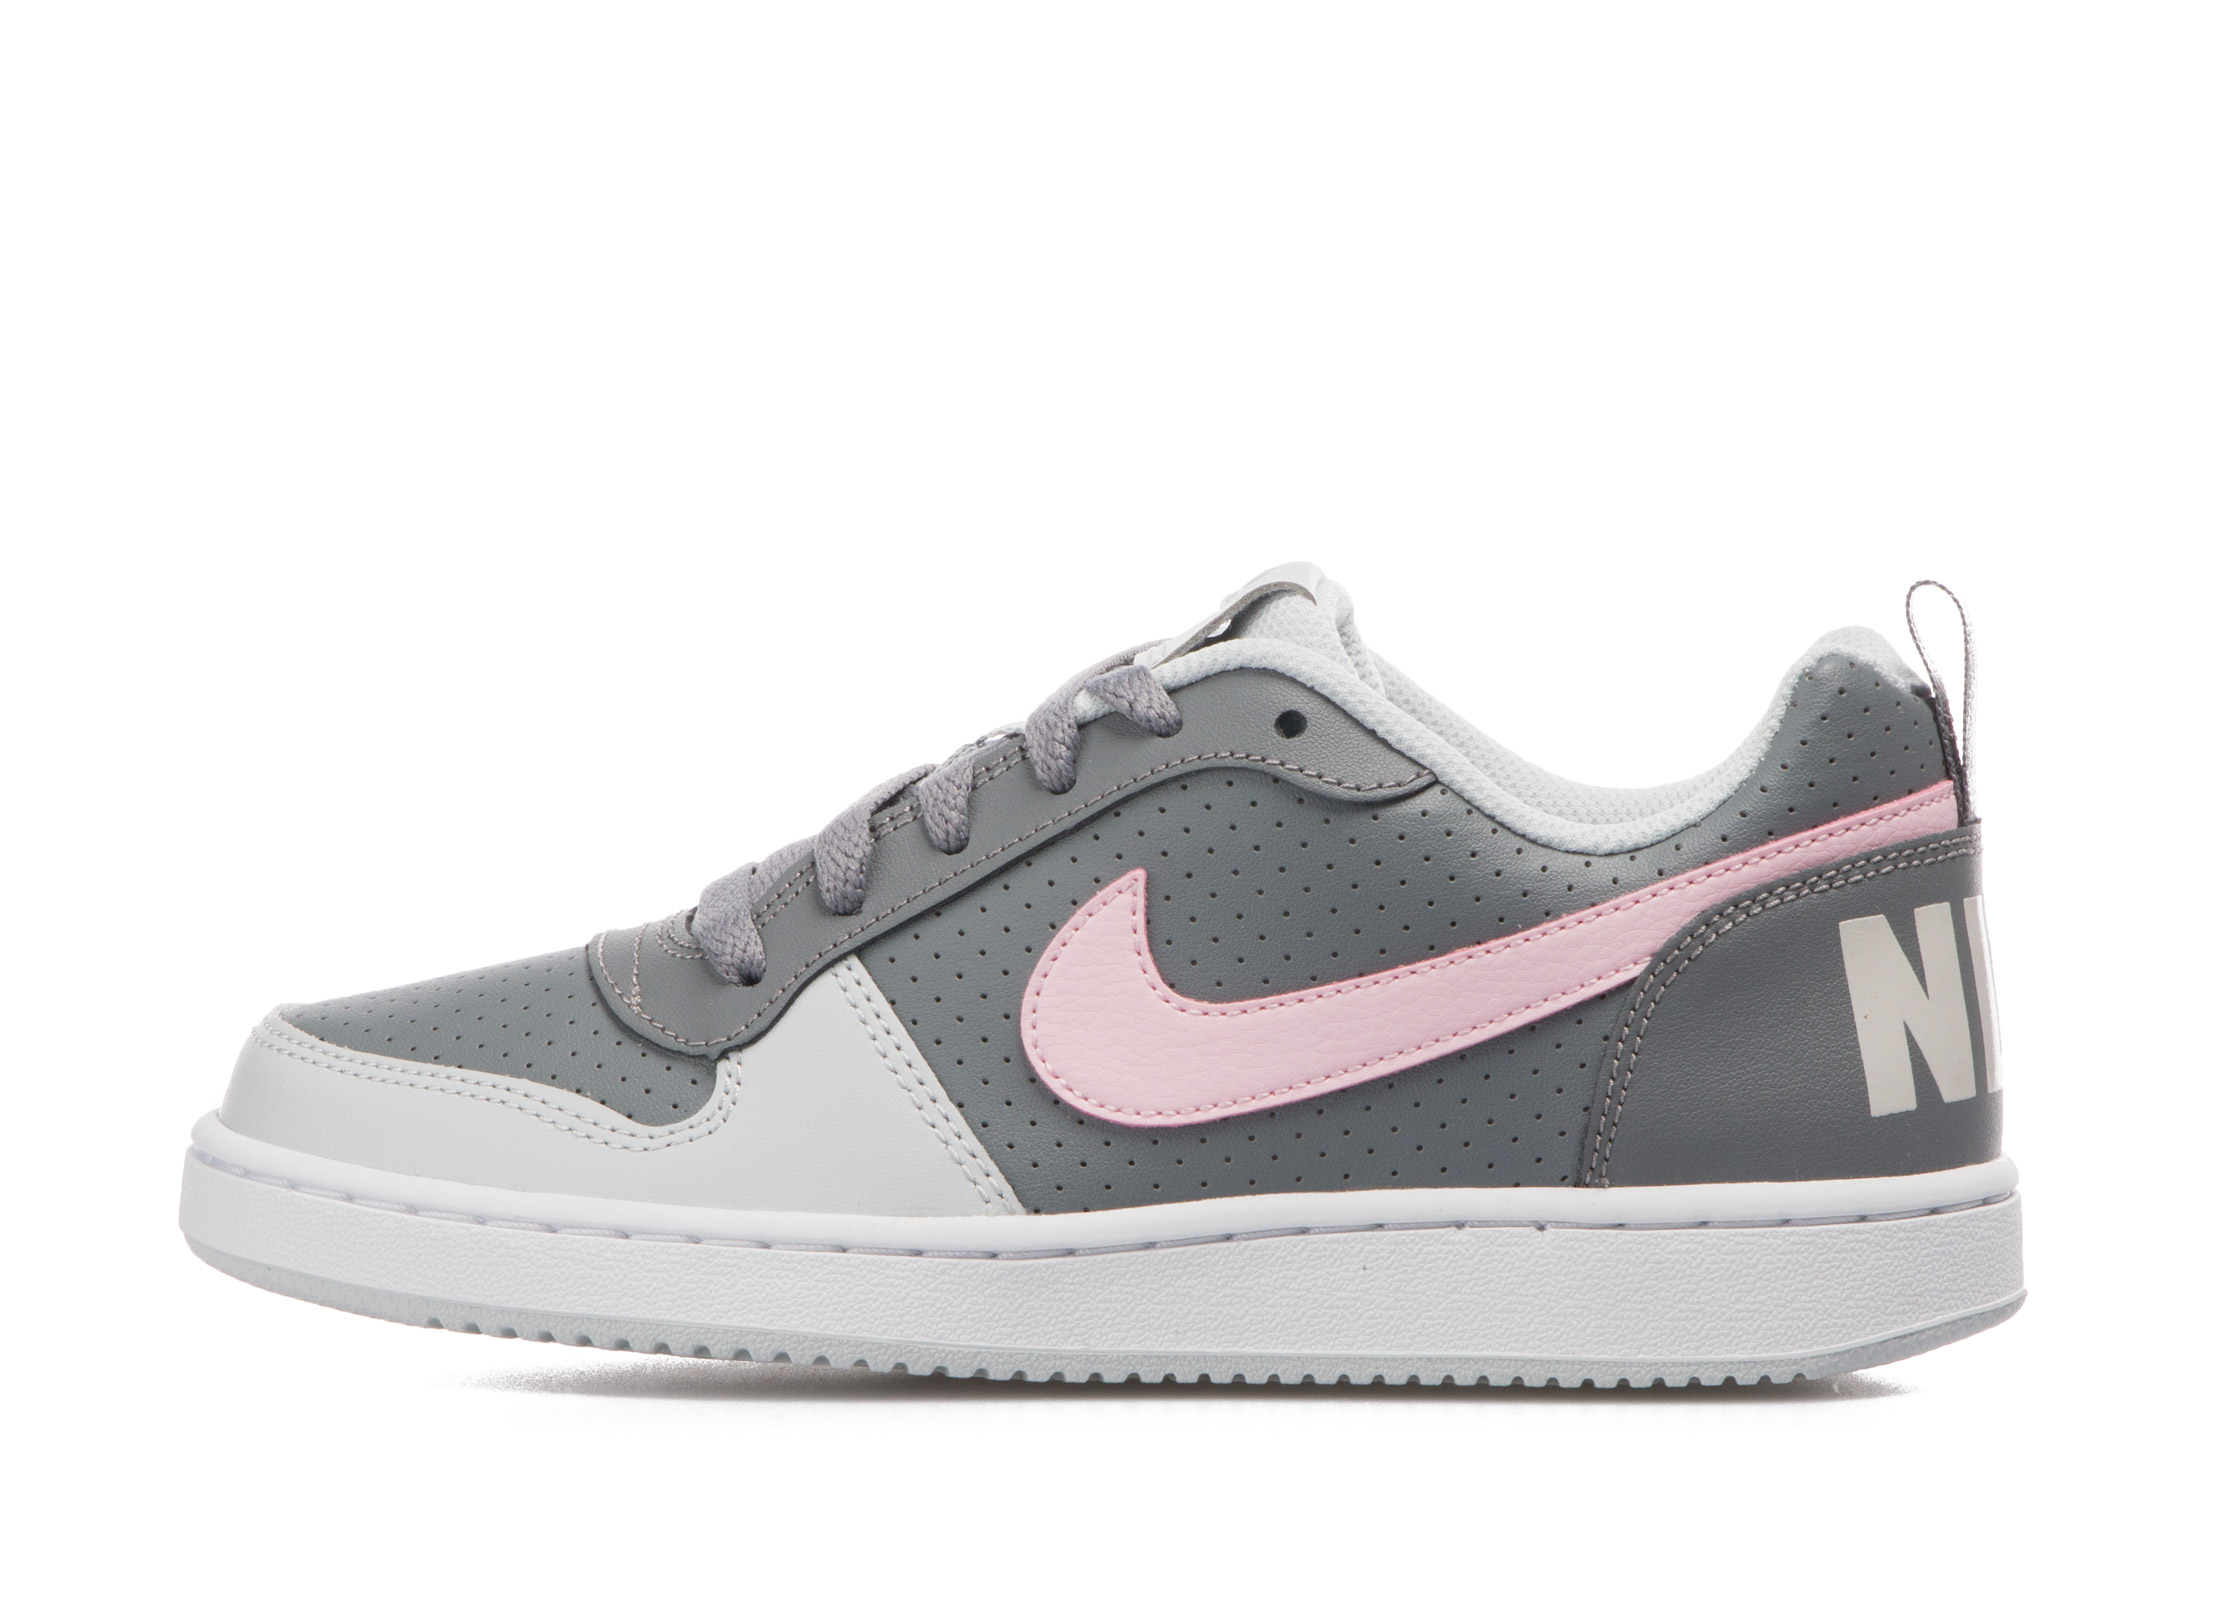 NIKE COURT BOROUGH LOW GS 845104-008 Ανθρακί